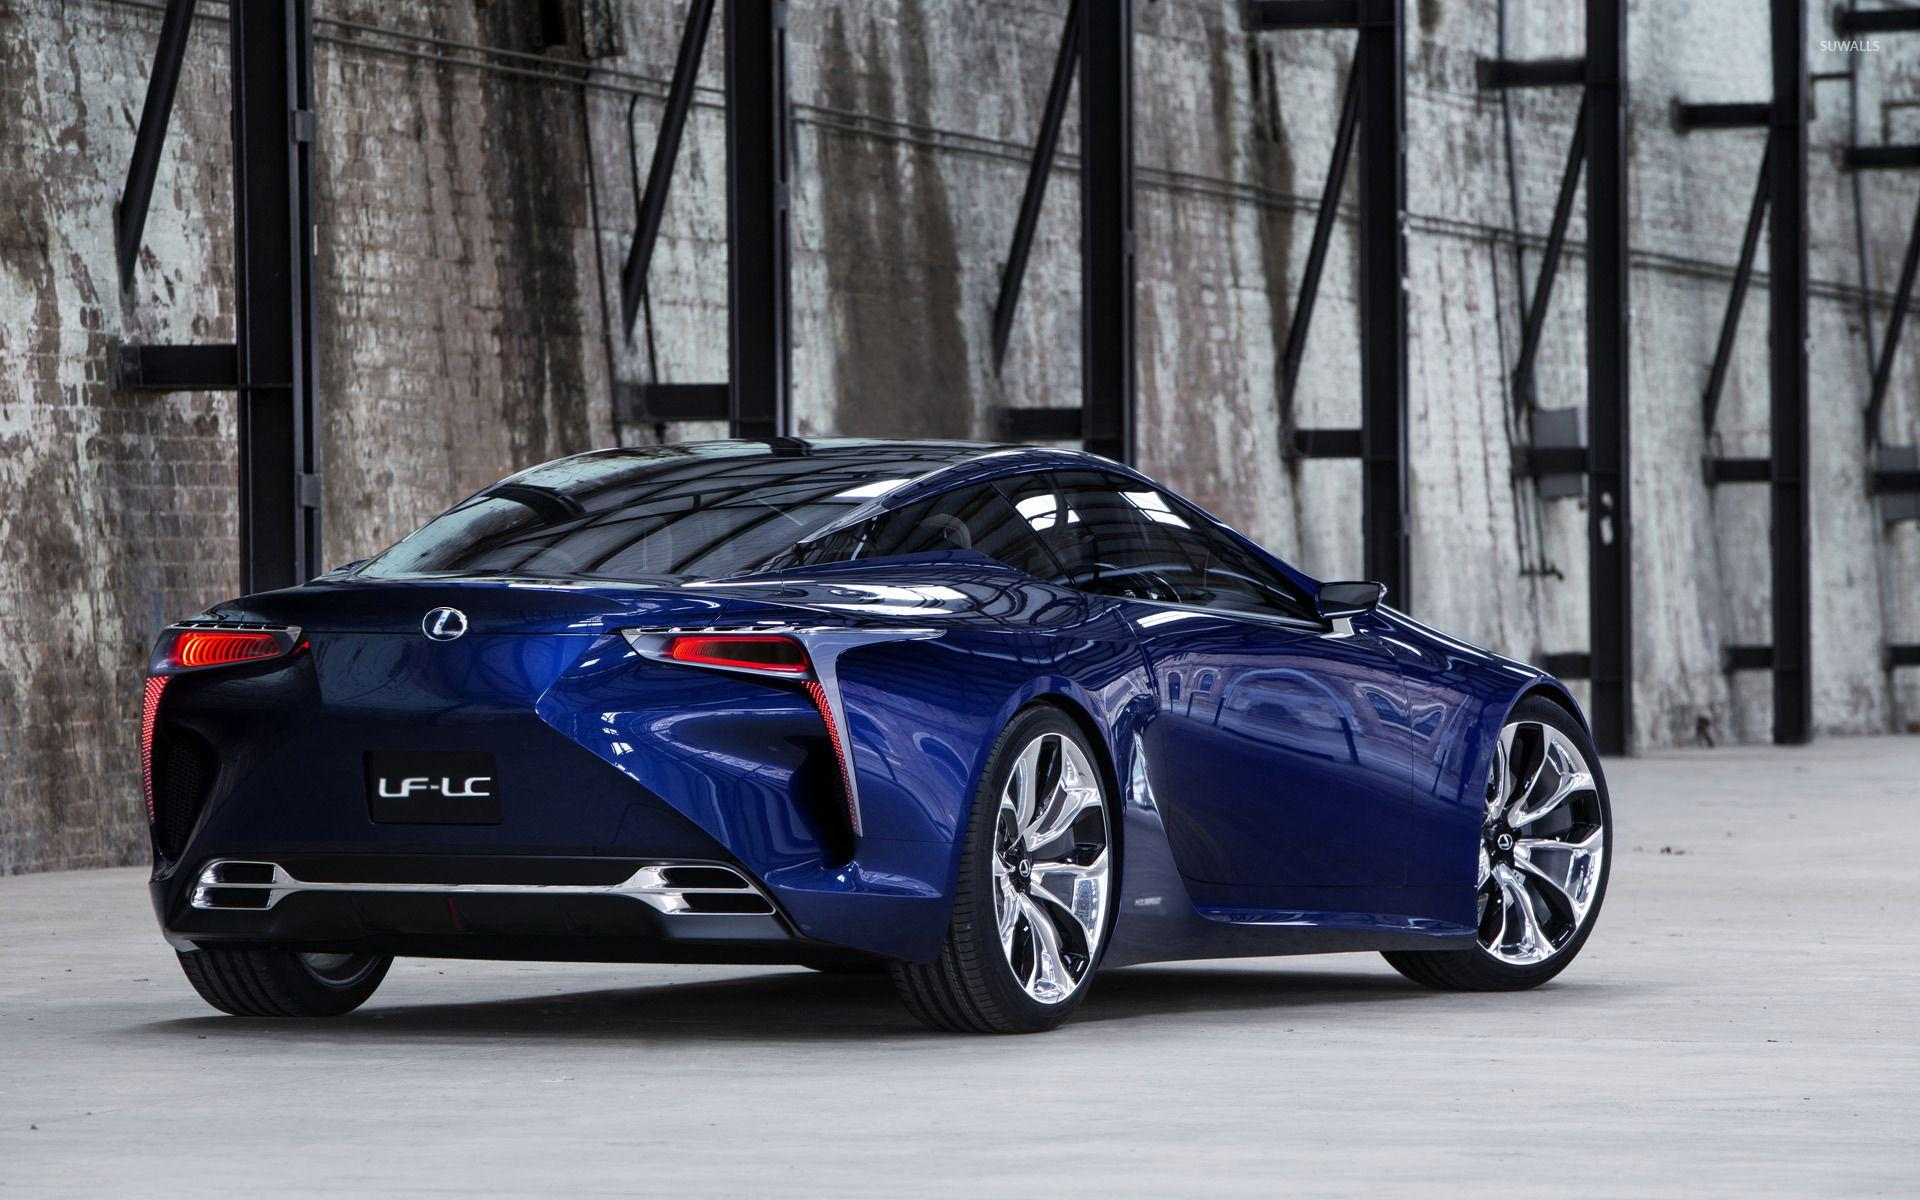 2012 Lexus LF-LC Blue Concept wallpaper - Car wallpapers - #15439